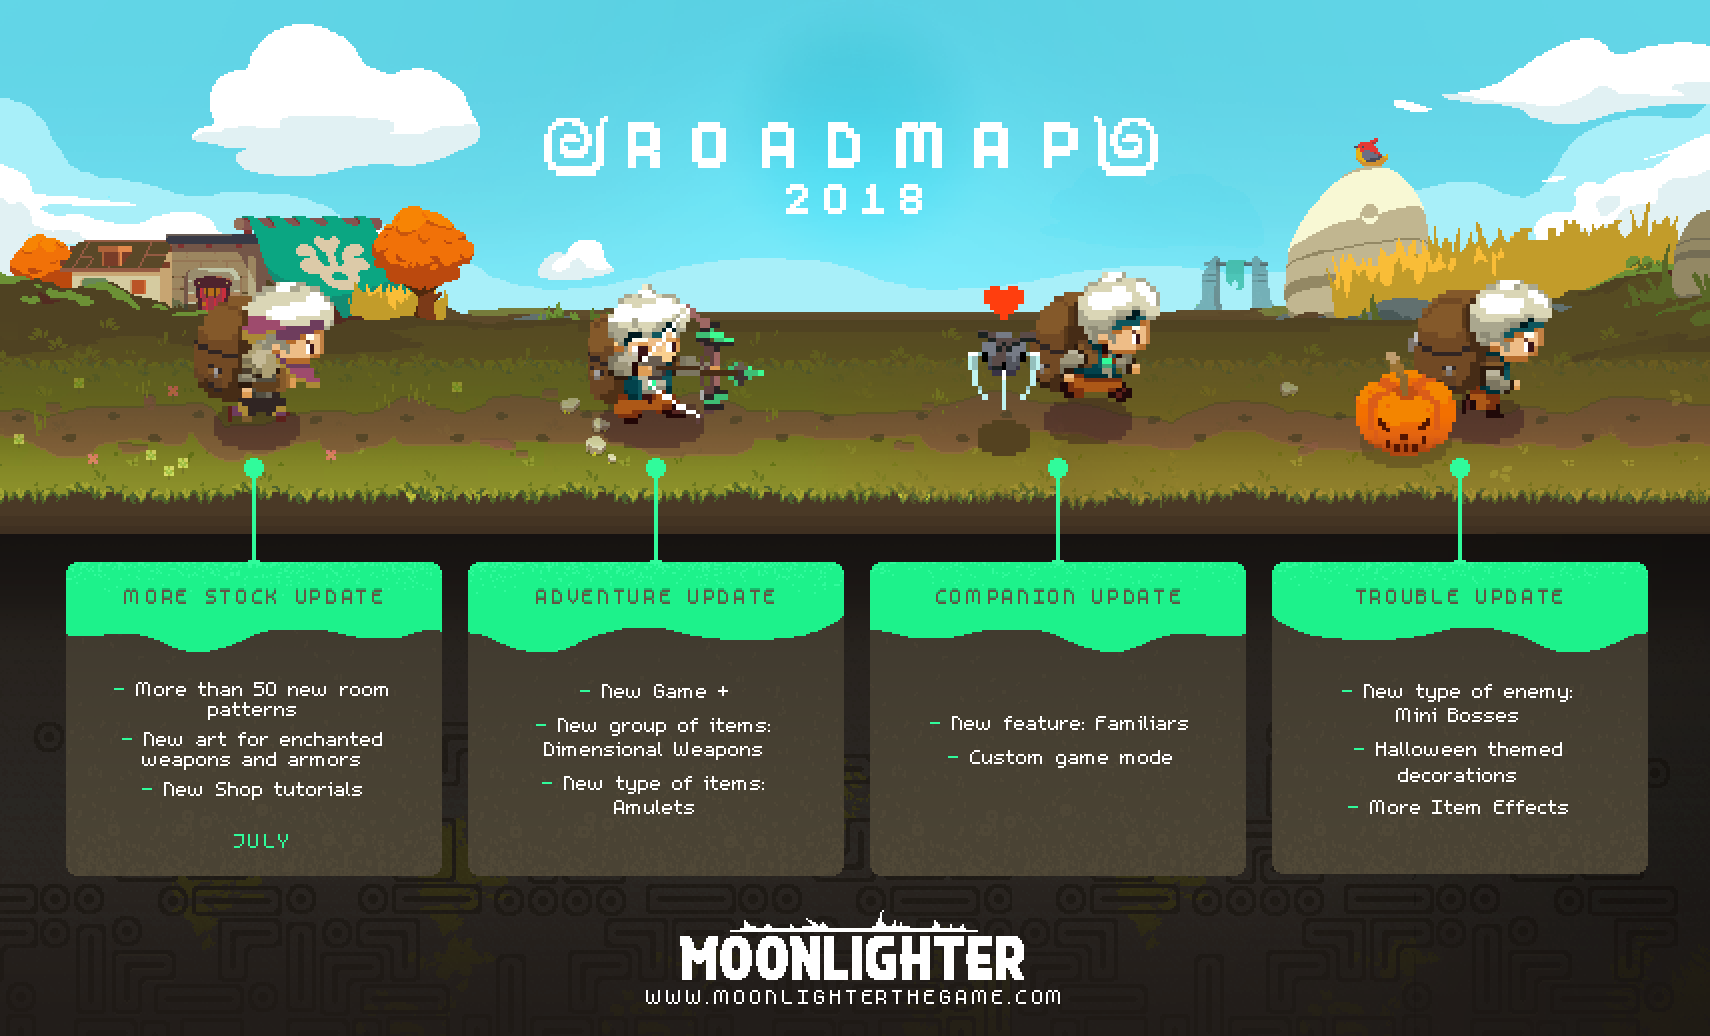 Moonlighter - 2018 Development Roadmap